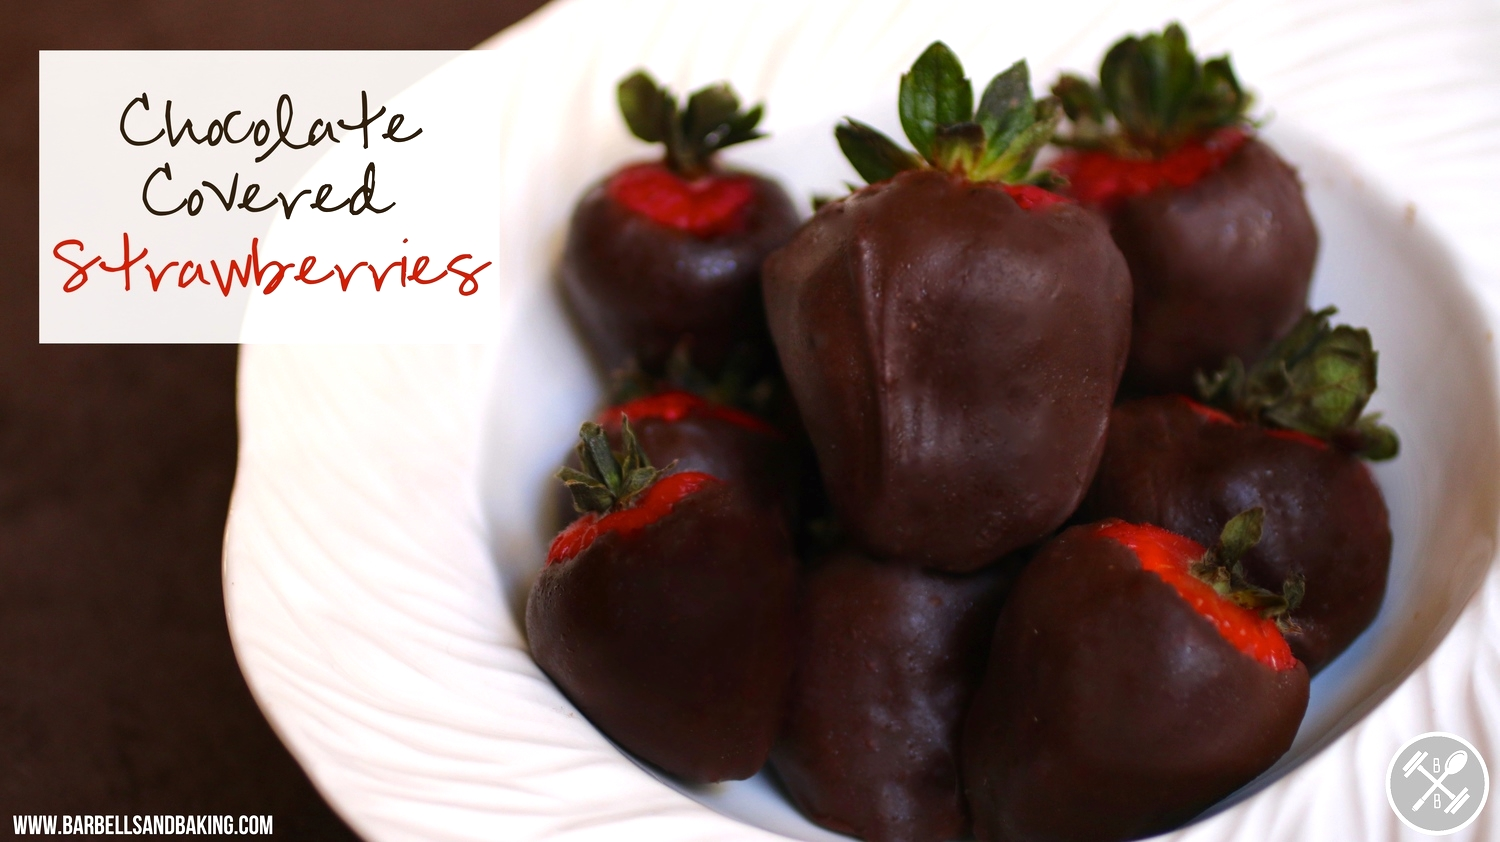 Paleo Chocolate Covered Strawberries - A Delicious, Healthy, and Easy Dessert - www.barbellsandbaking.com